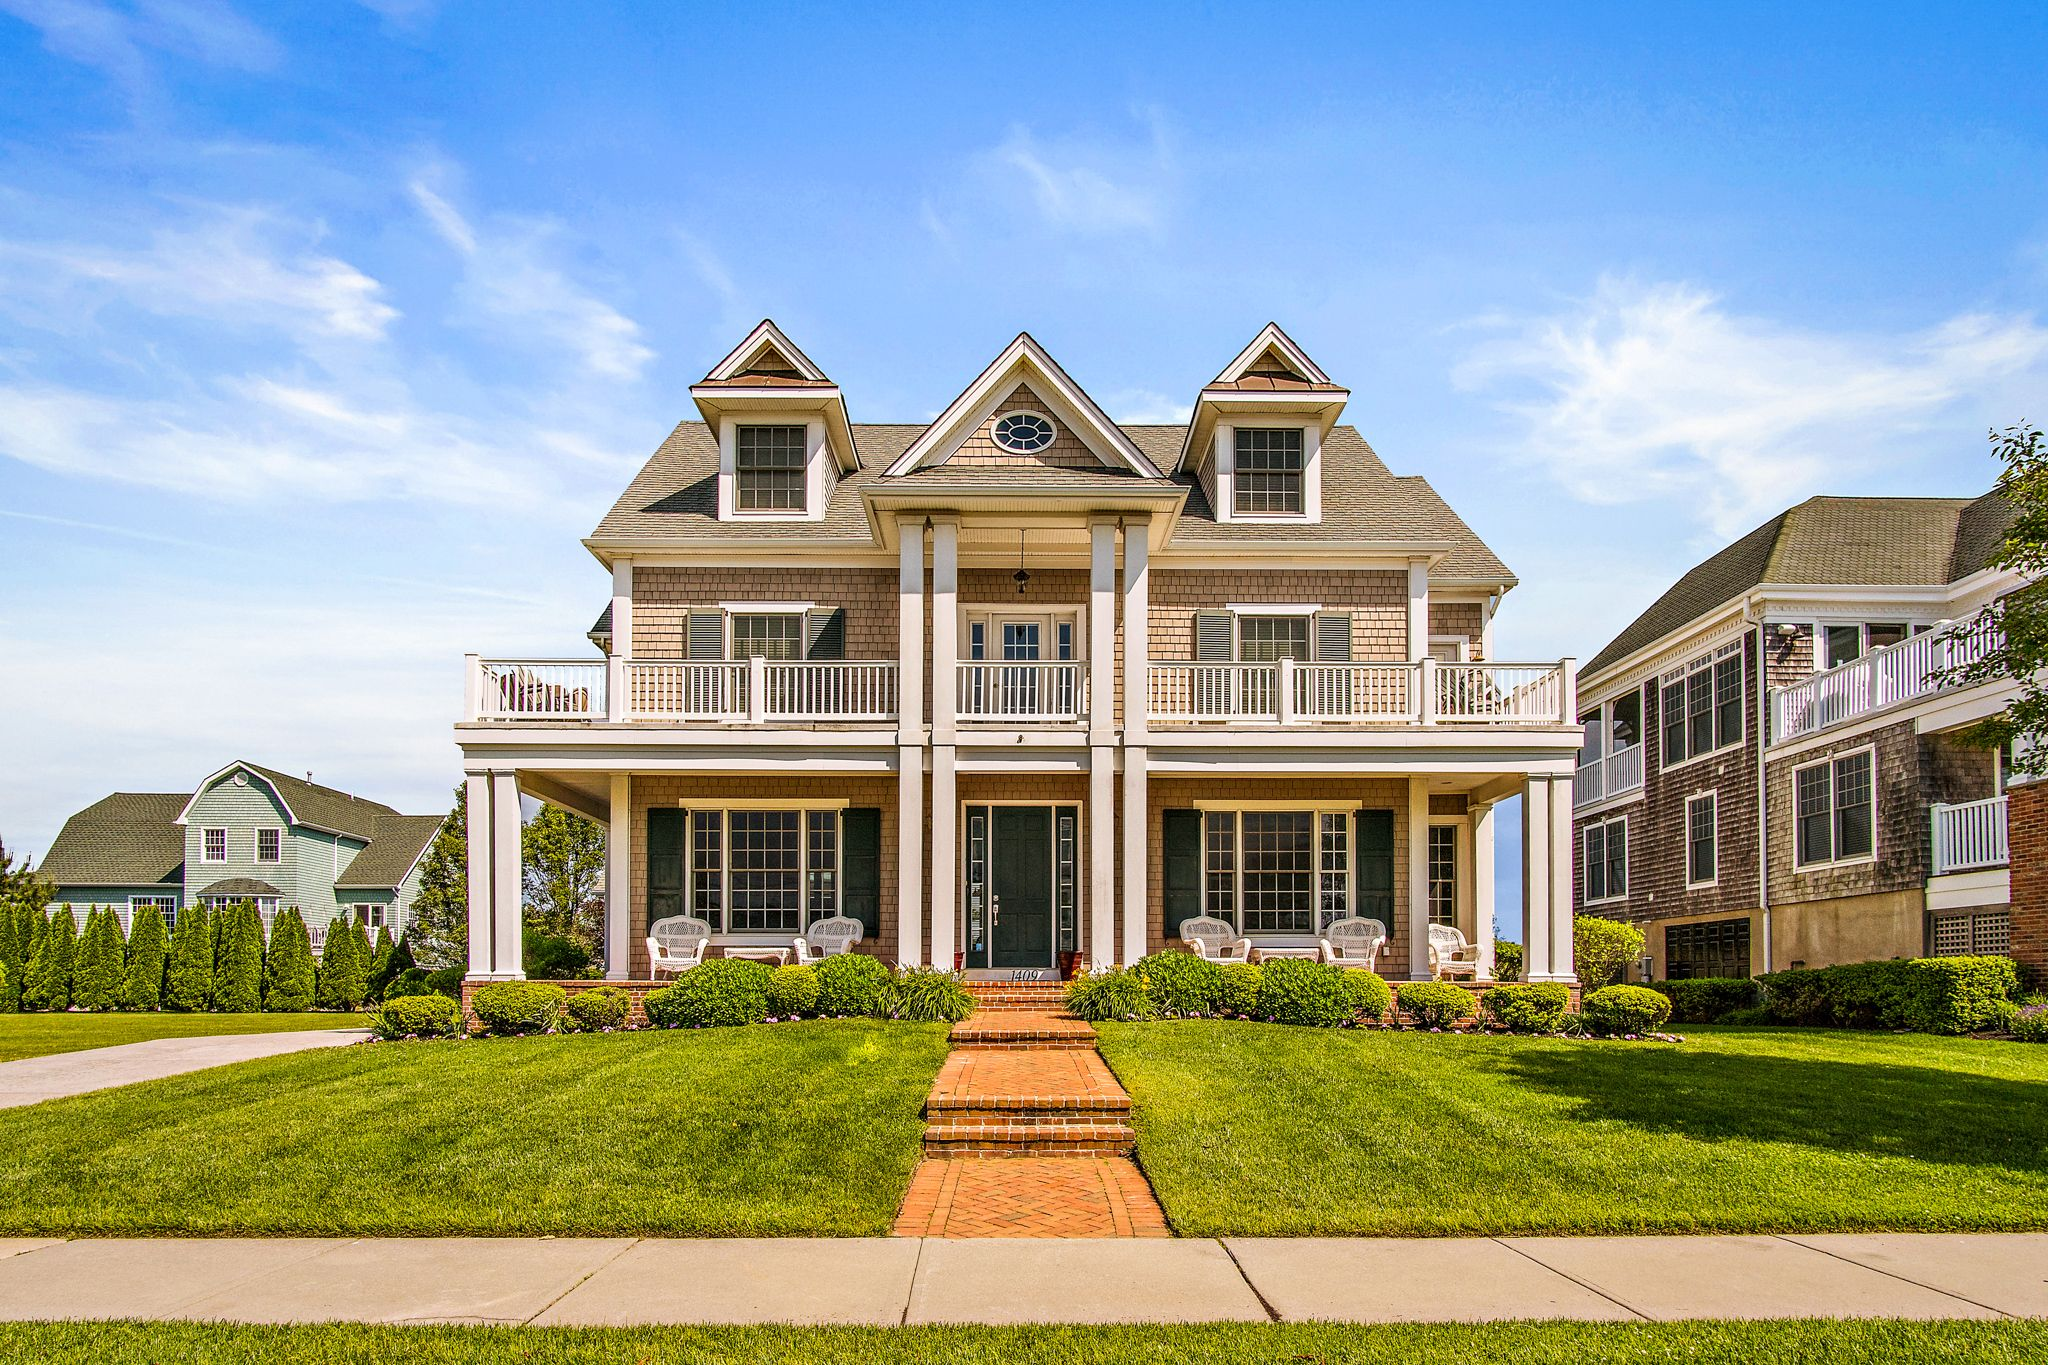 For sale 1409 new jersey ave in cape may 219500000